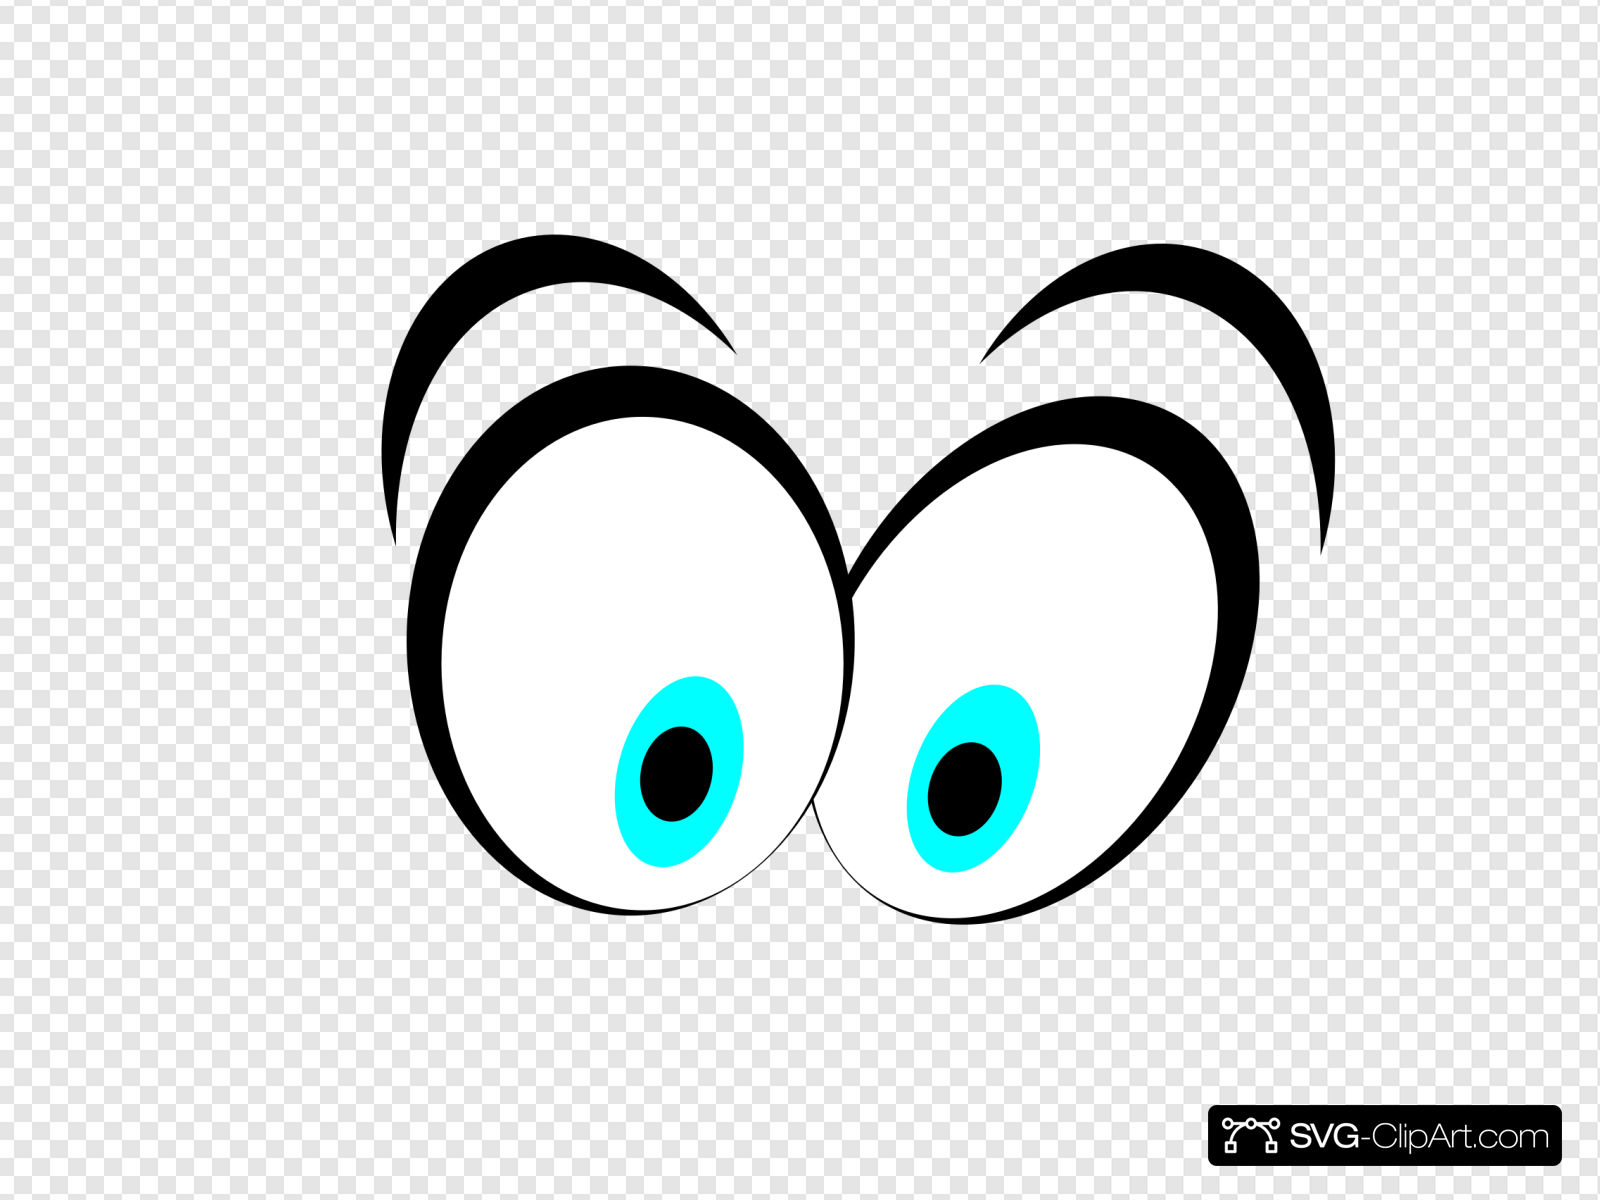 Animated Blue Cartoon Eyes Clip art, Icon and SVG.